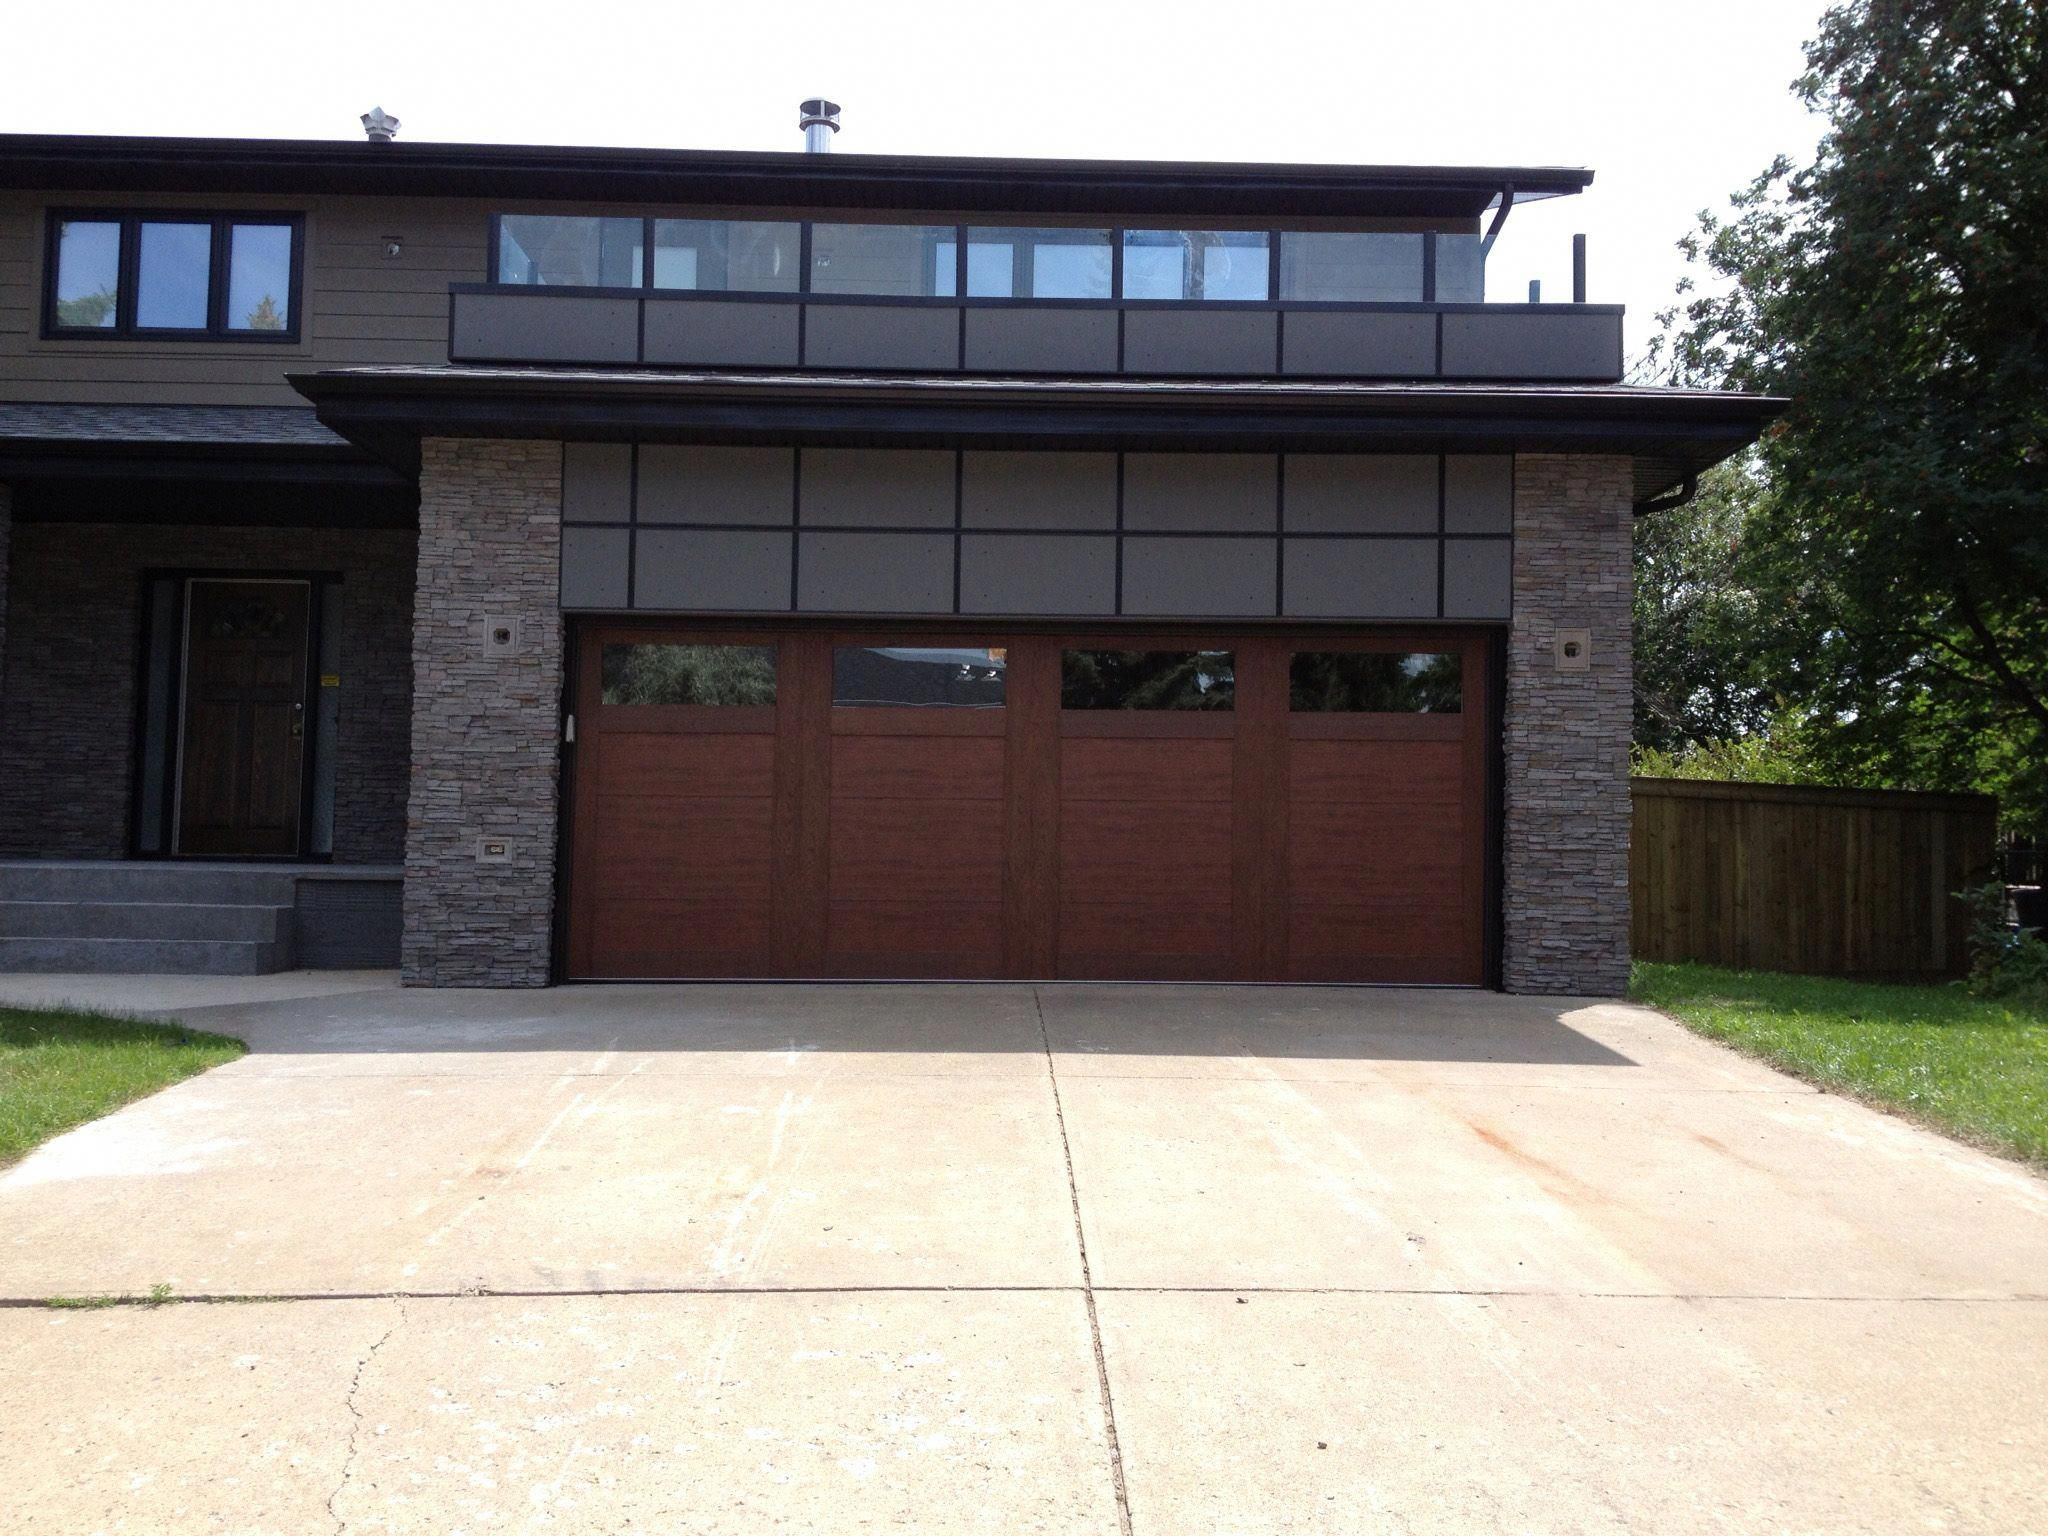 A Stained Steel Garage Door Adds Warmth To This Contemporary Home